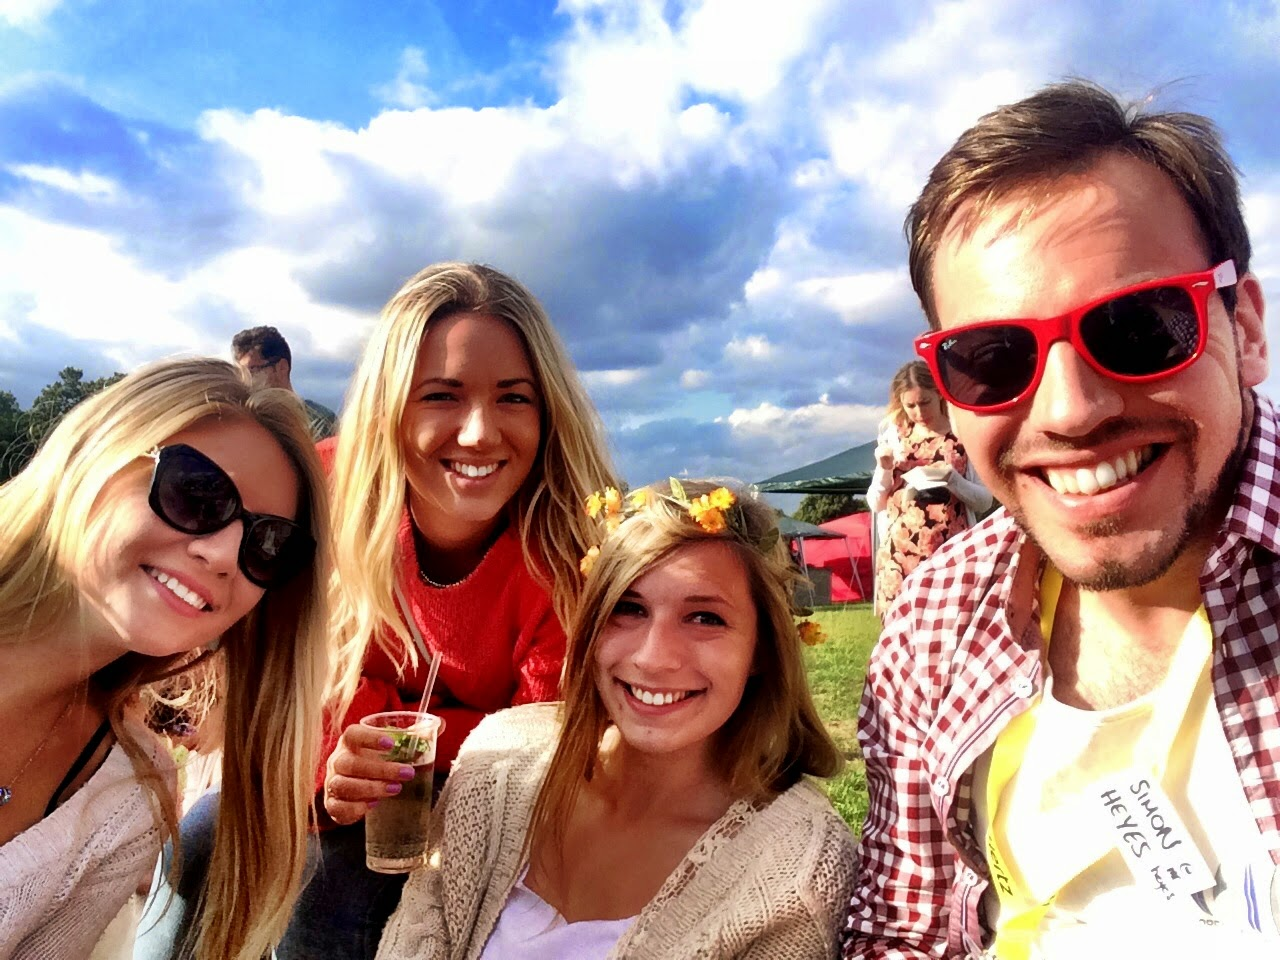 3 Blondes and a brunette - Blogstock 2014